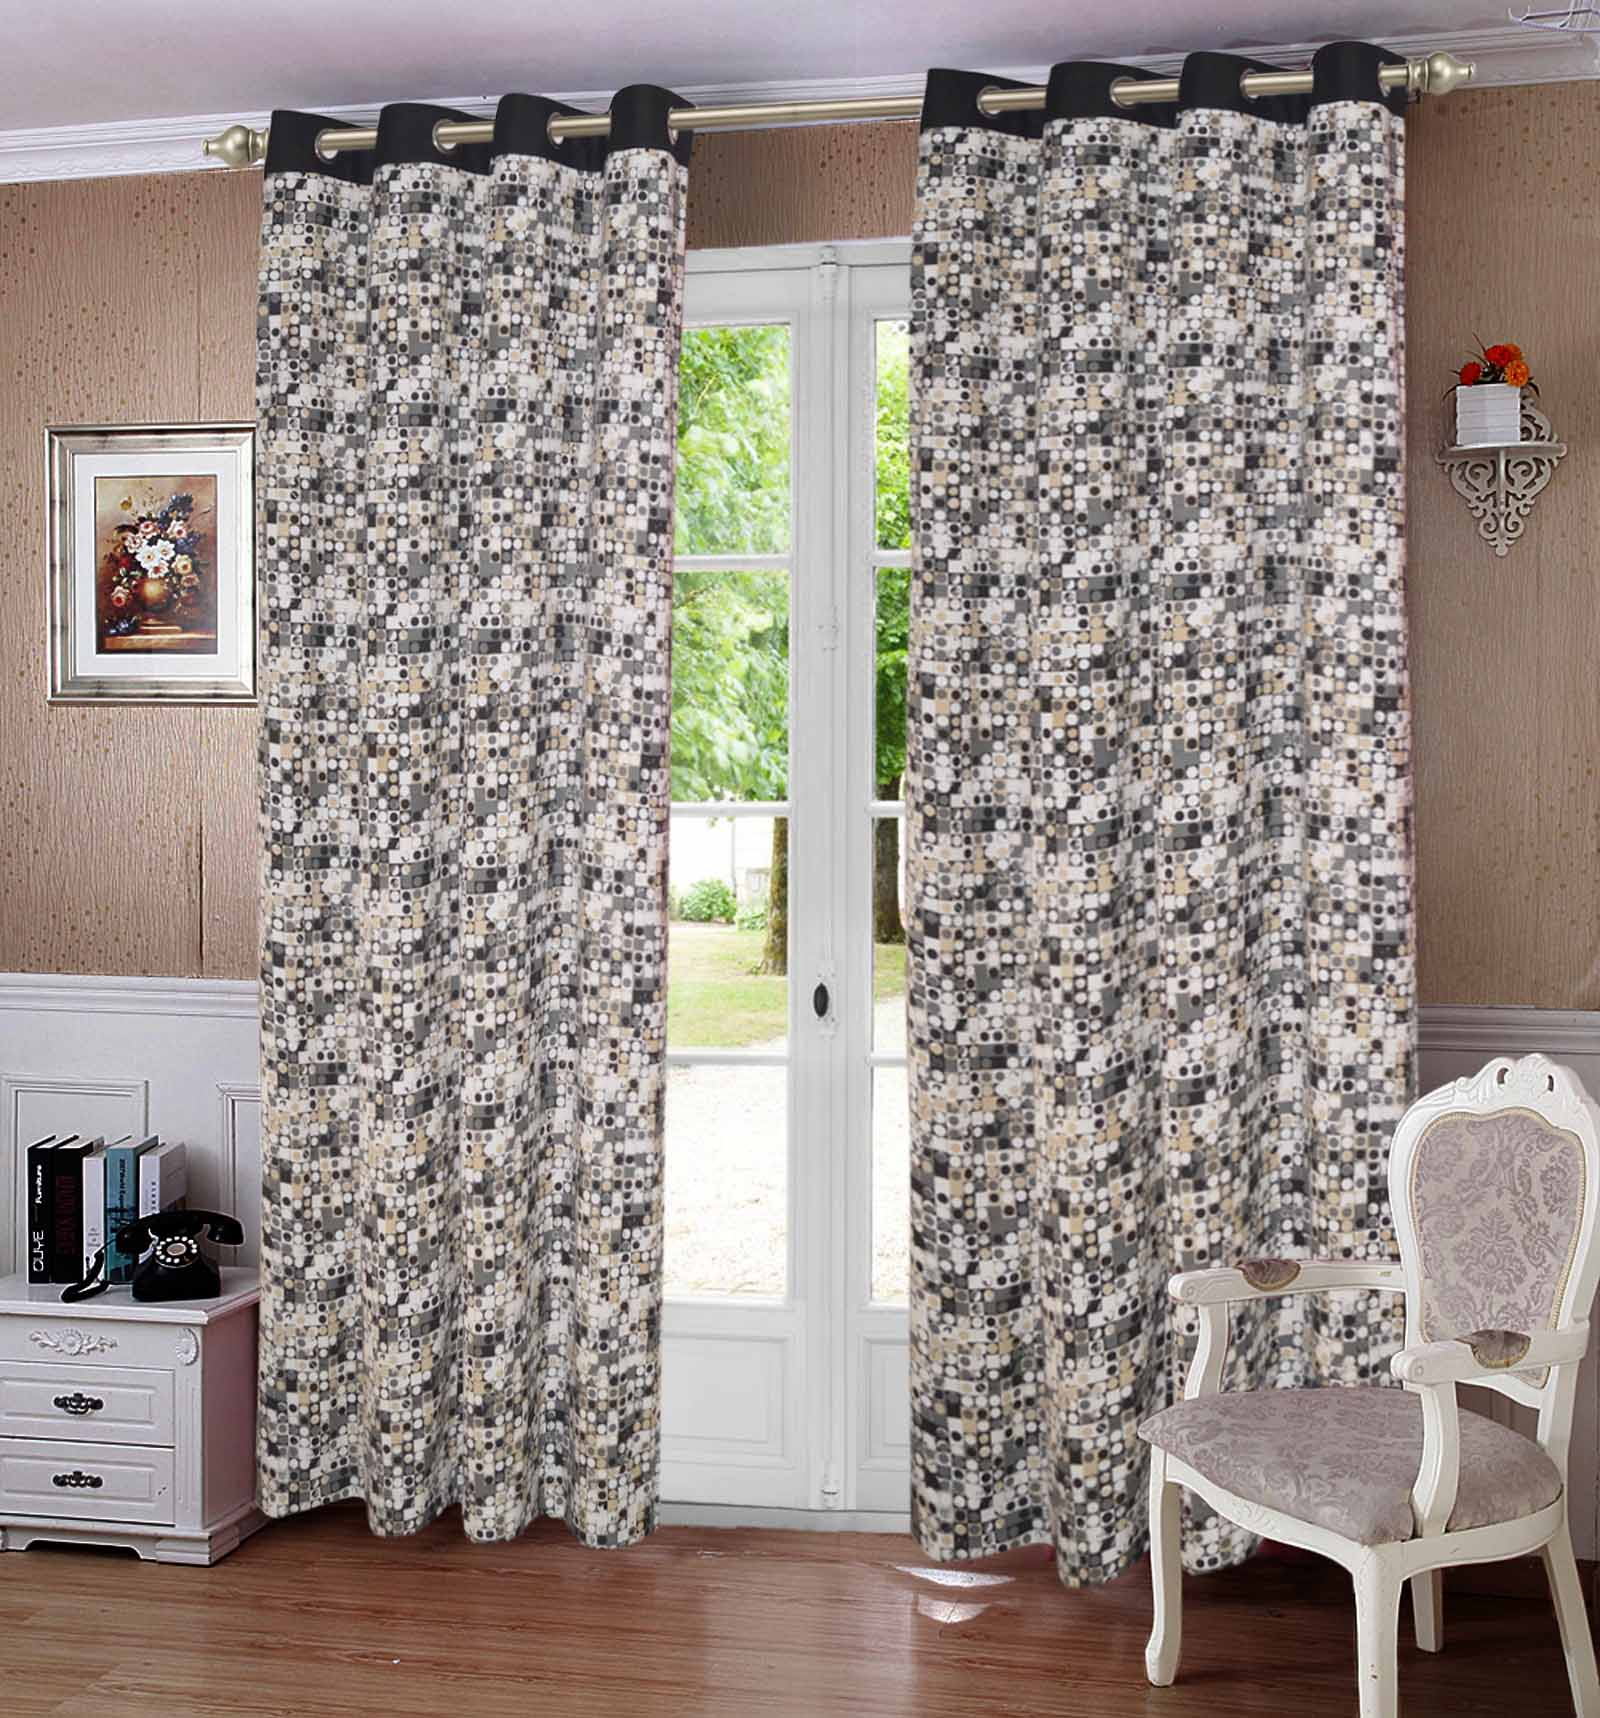 Lushomes Coins Printed Cotton Curtains with 8 Eyelets & Plain Tiebacks for Long Door (Single Pc) Size: 54x108 inches